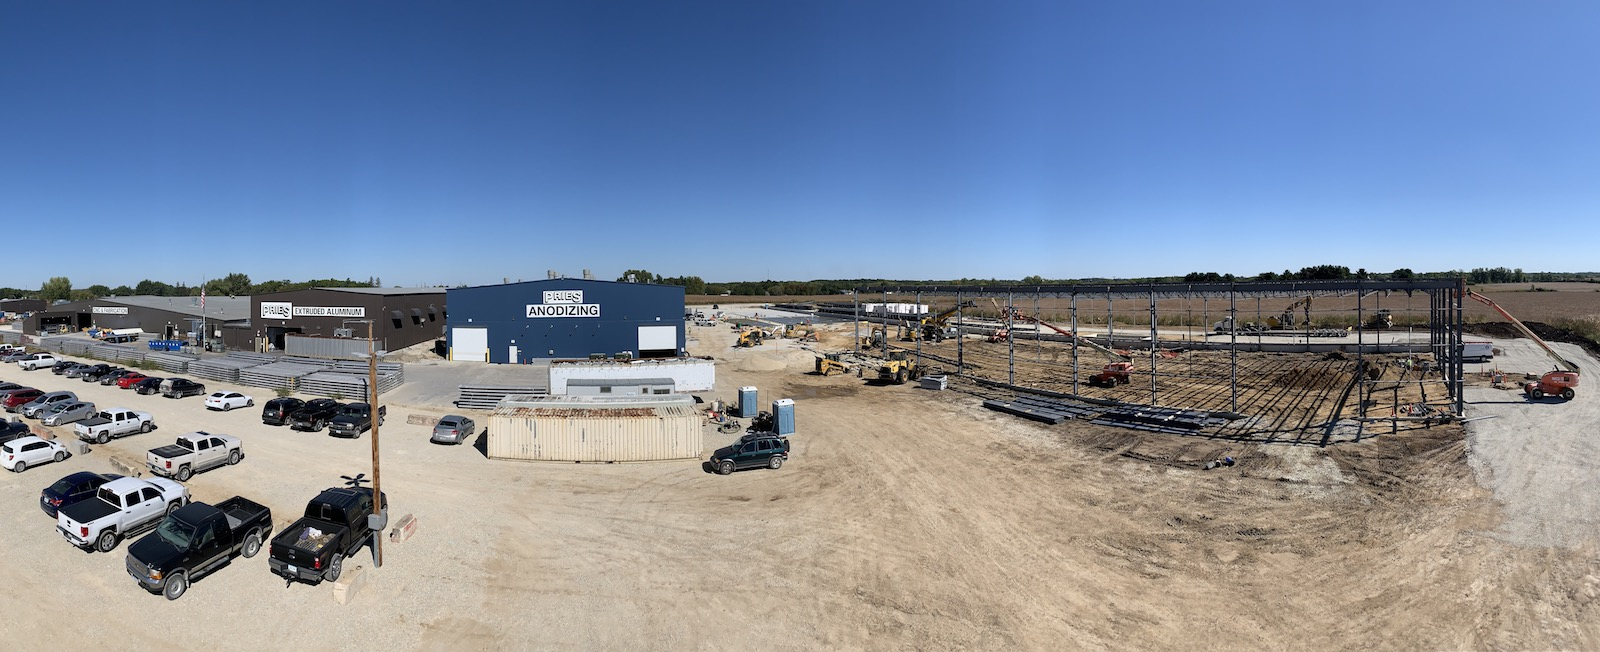 Panoramic view of Pries Enterprises, showing existing operations (left) and the new building under construction (right).